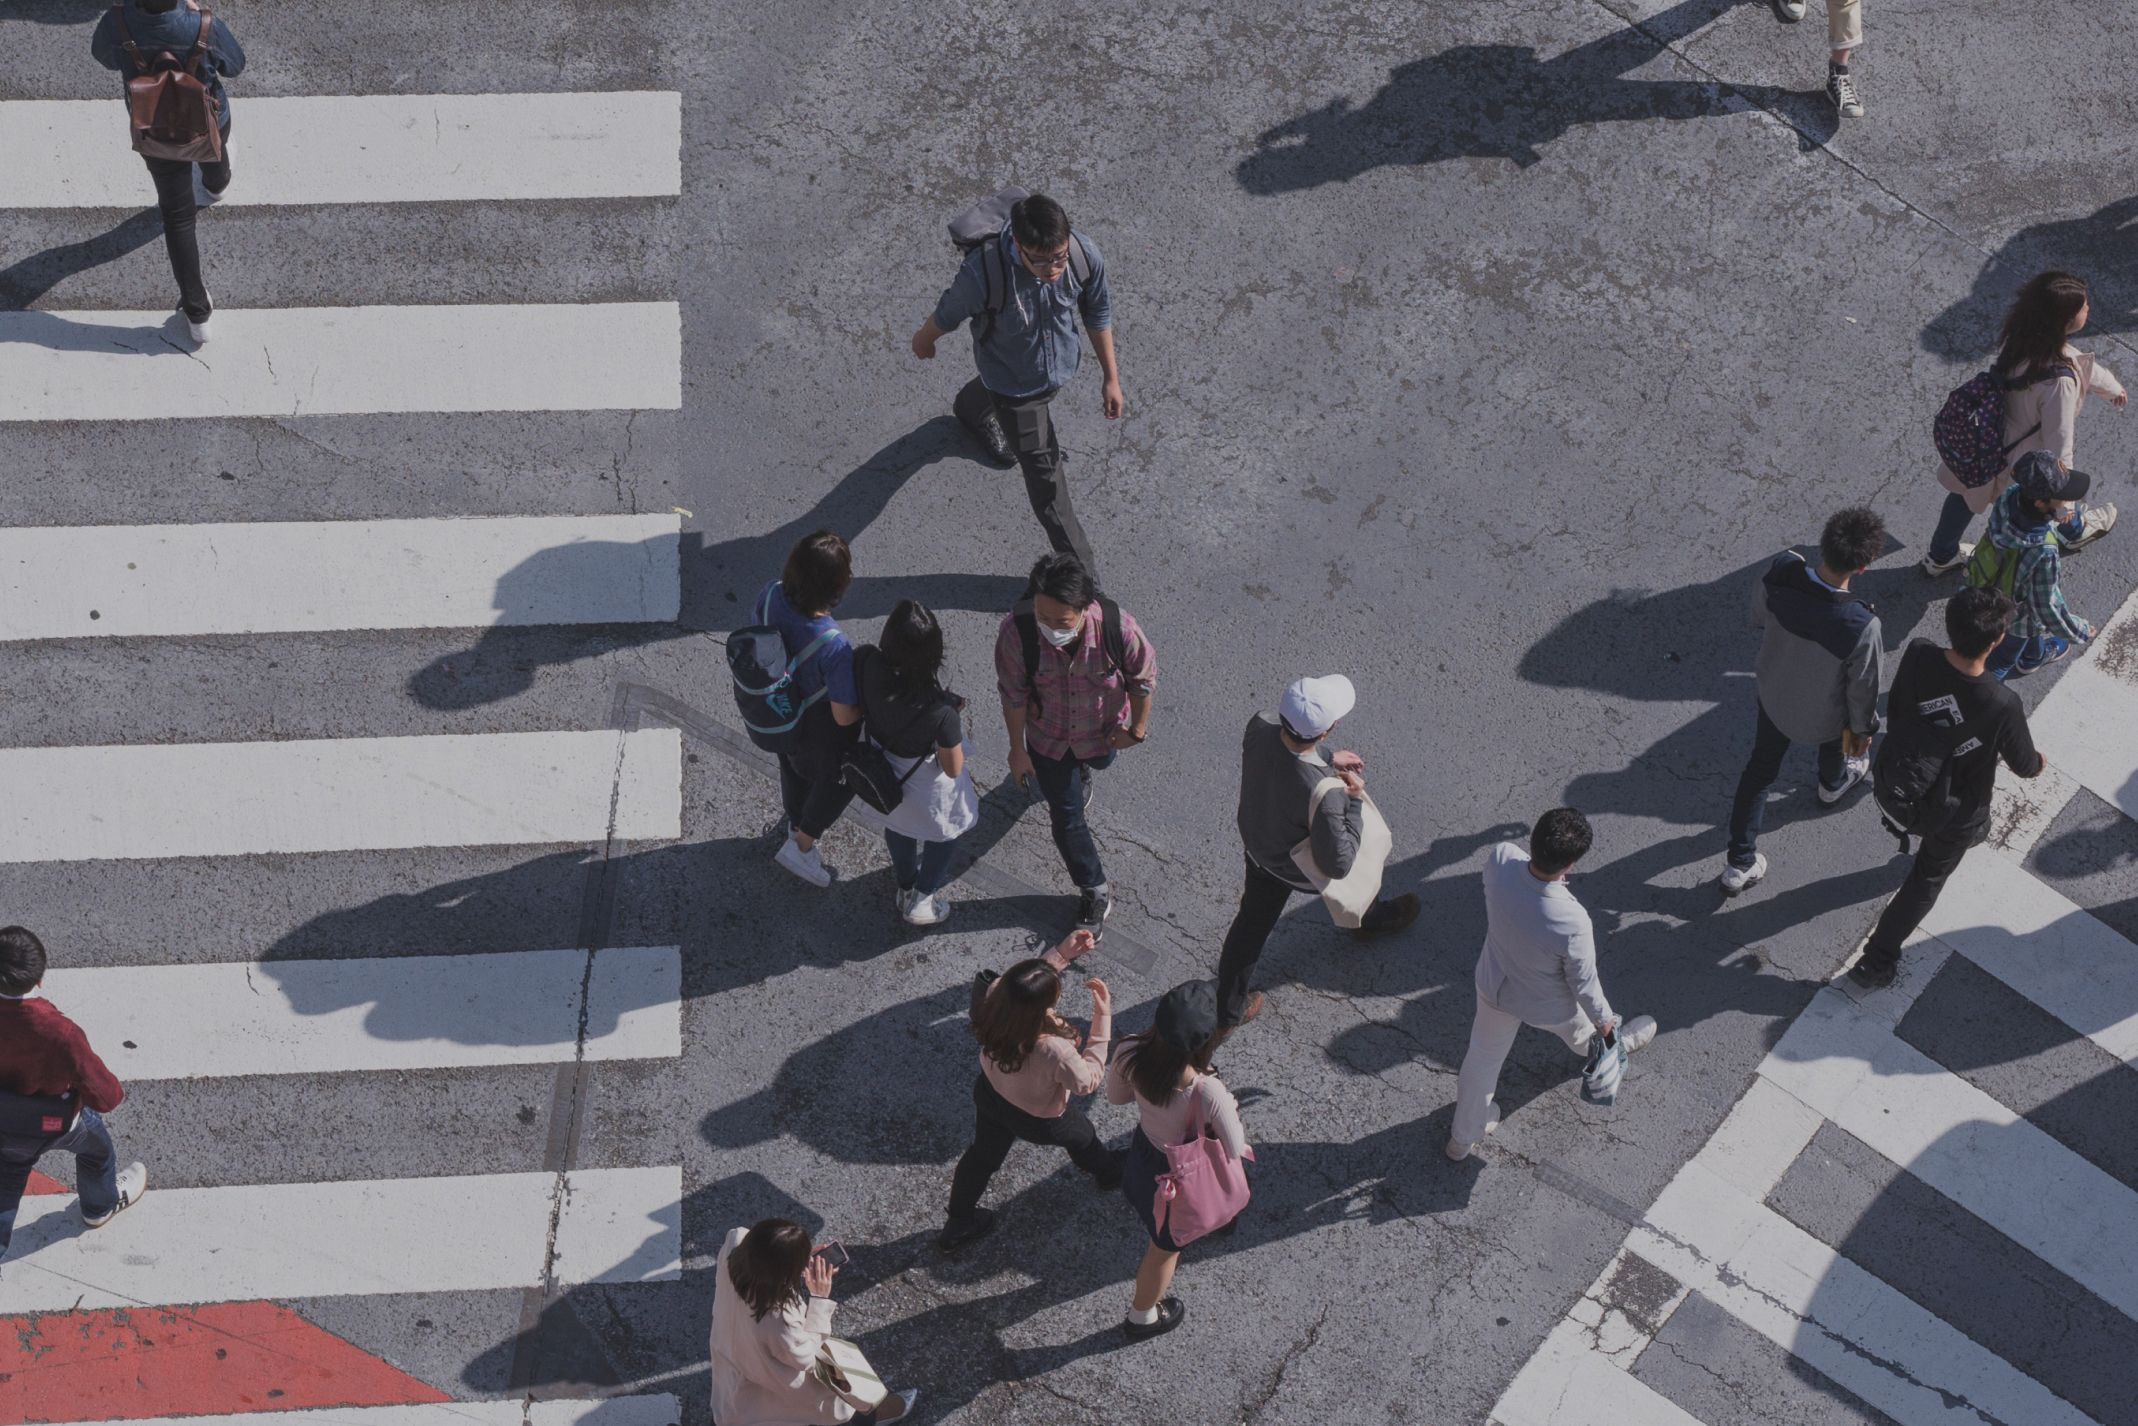 Photograph from above of people walking on a street with painted crosswalks